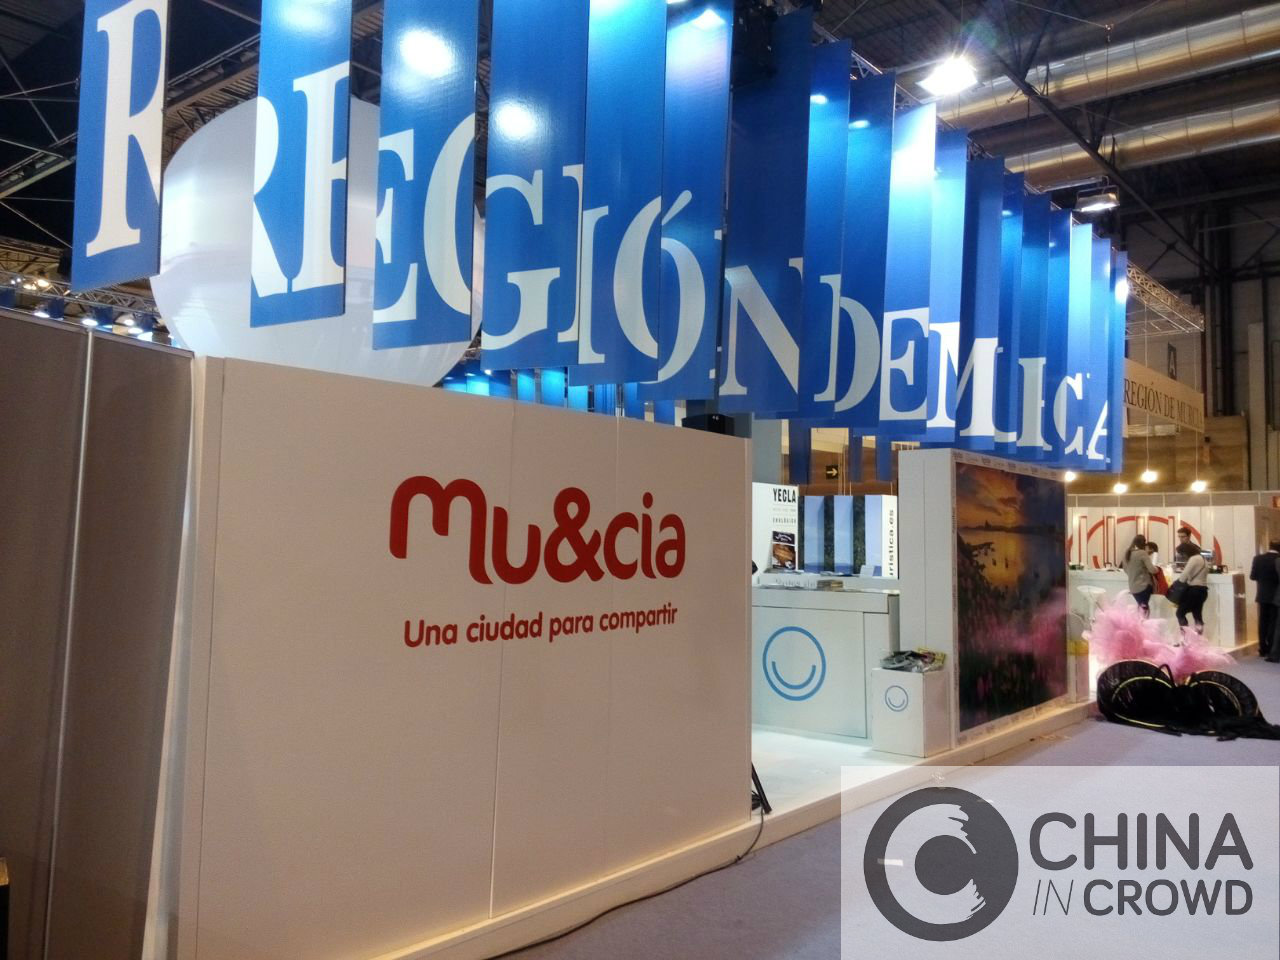 Fitur Region de Murcia. CHINA IN CROWD